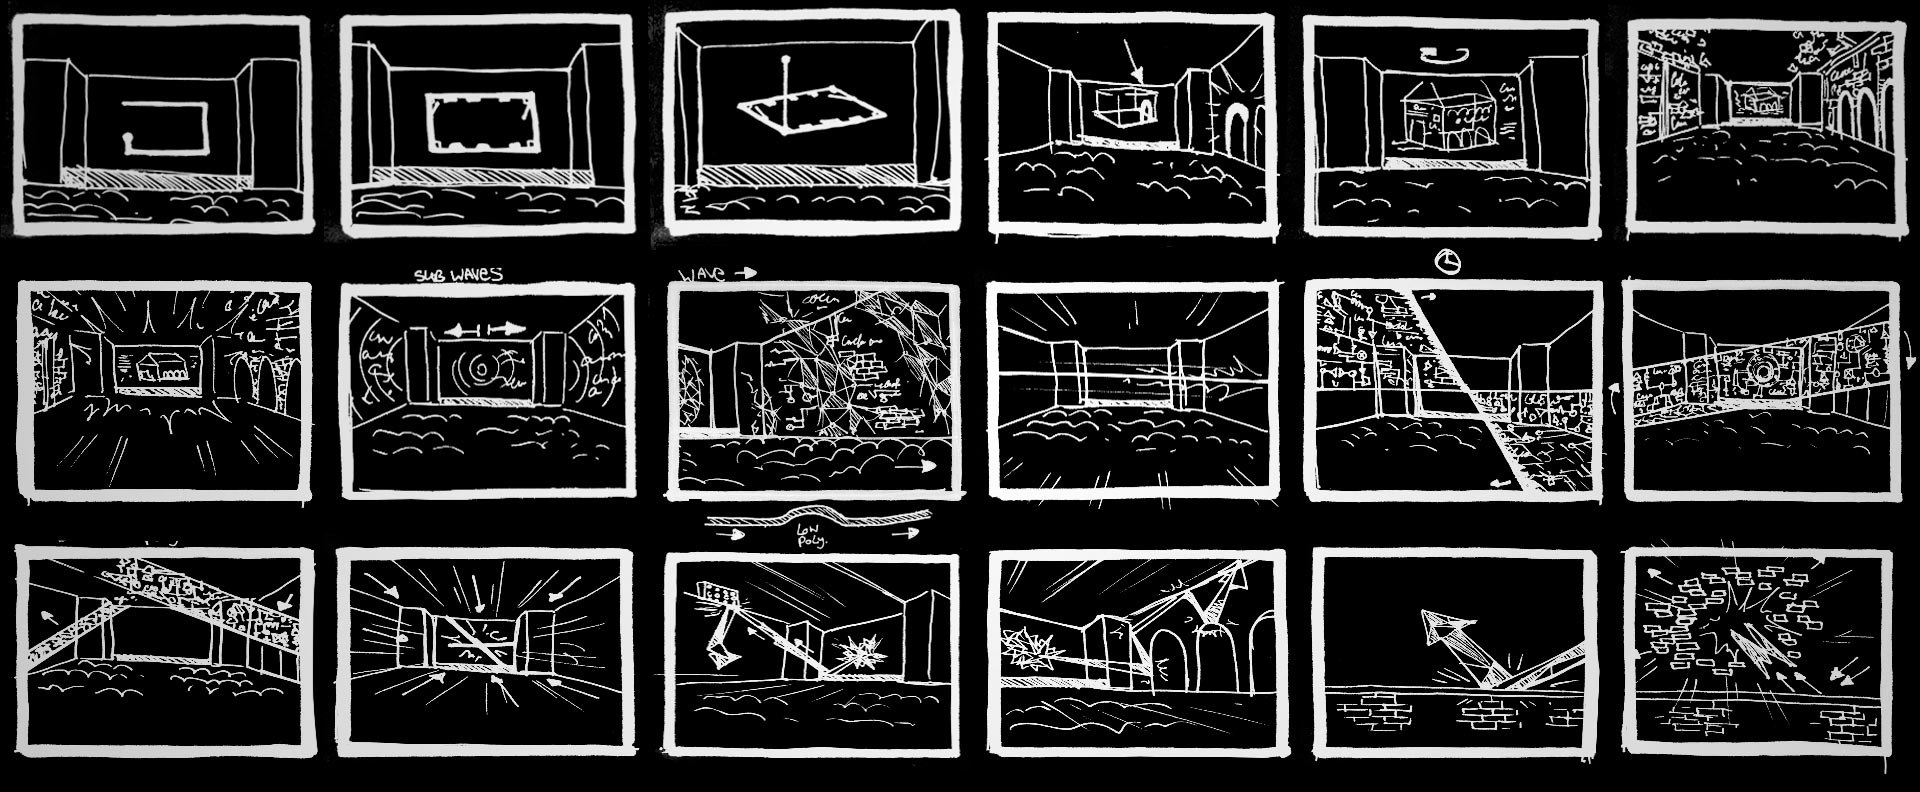 Storyboard for Bose created by Mr.Beam